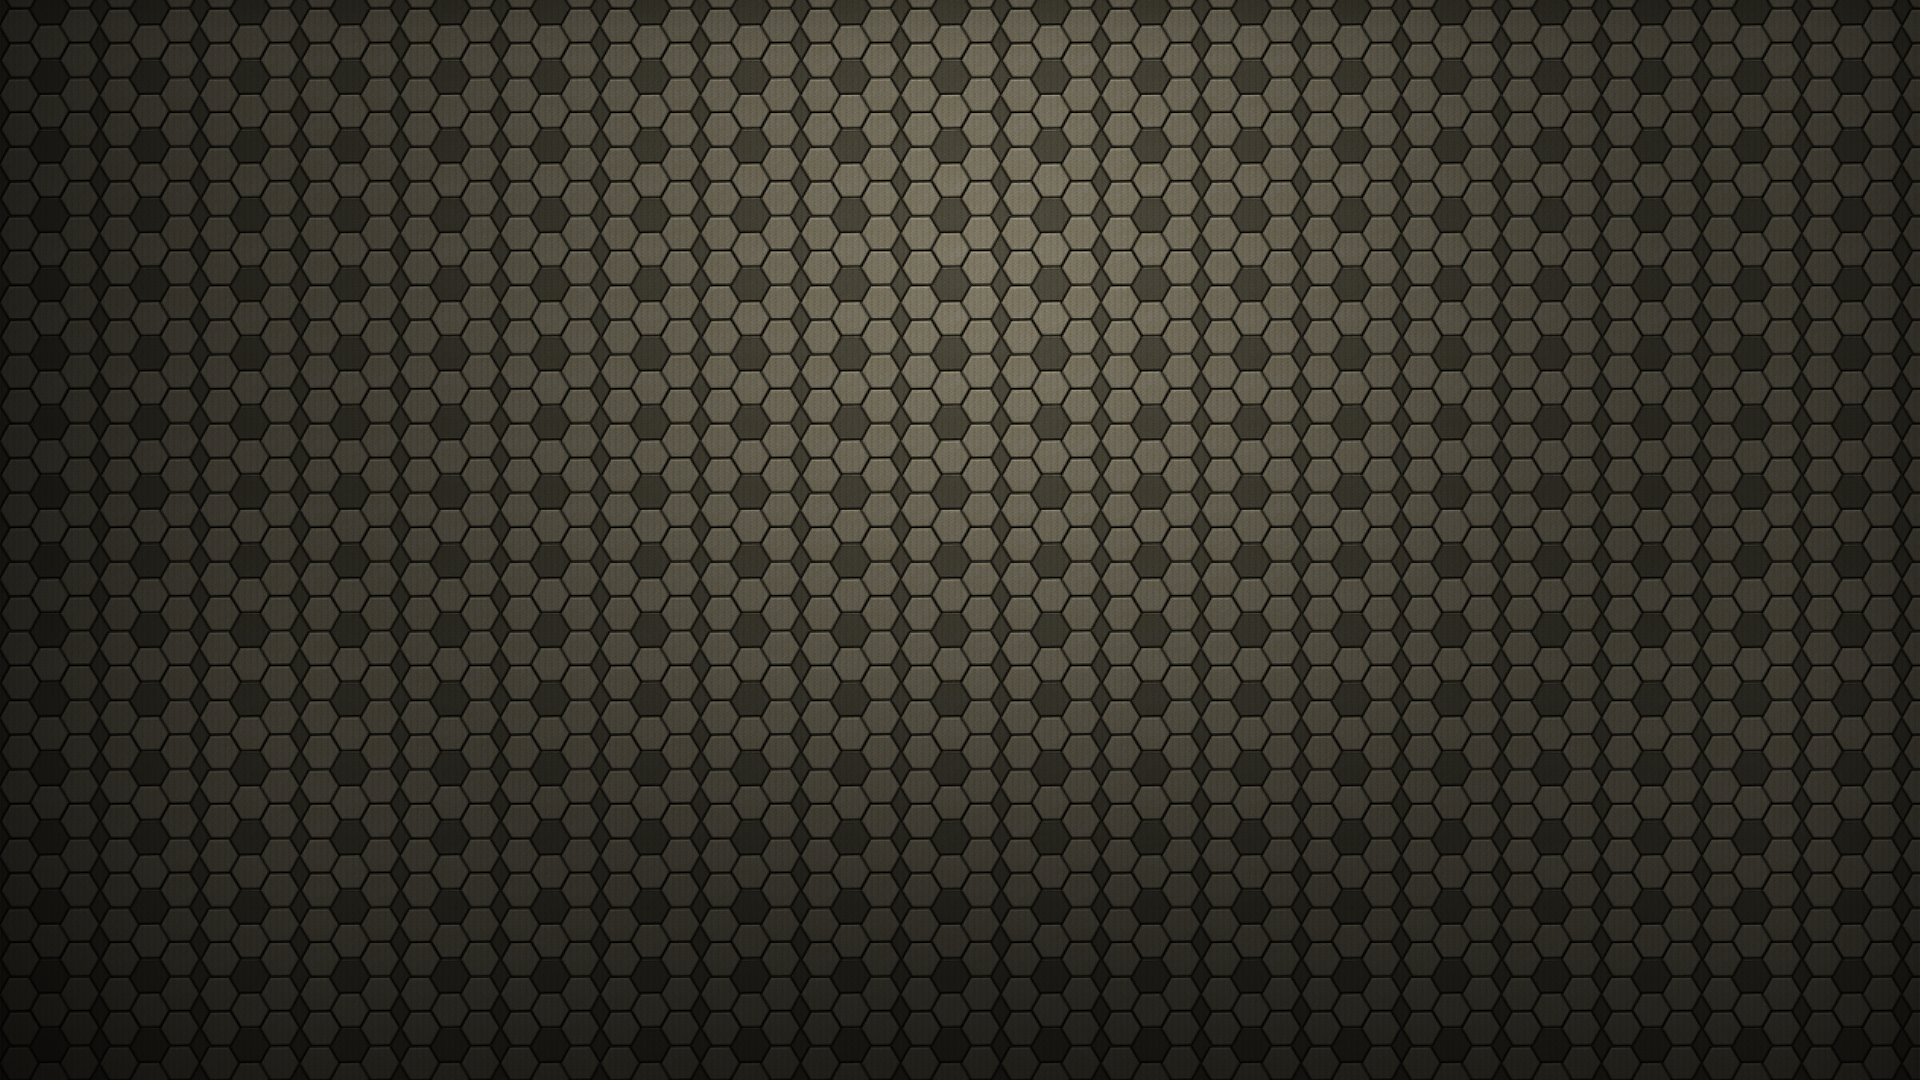 Hexagon pattern wallpaper